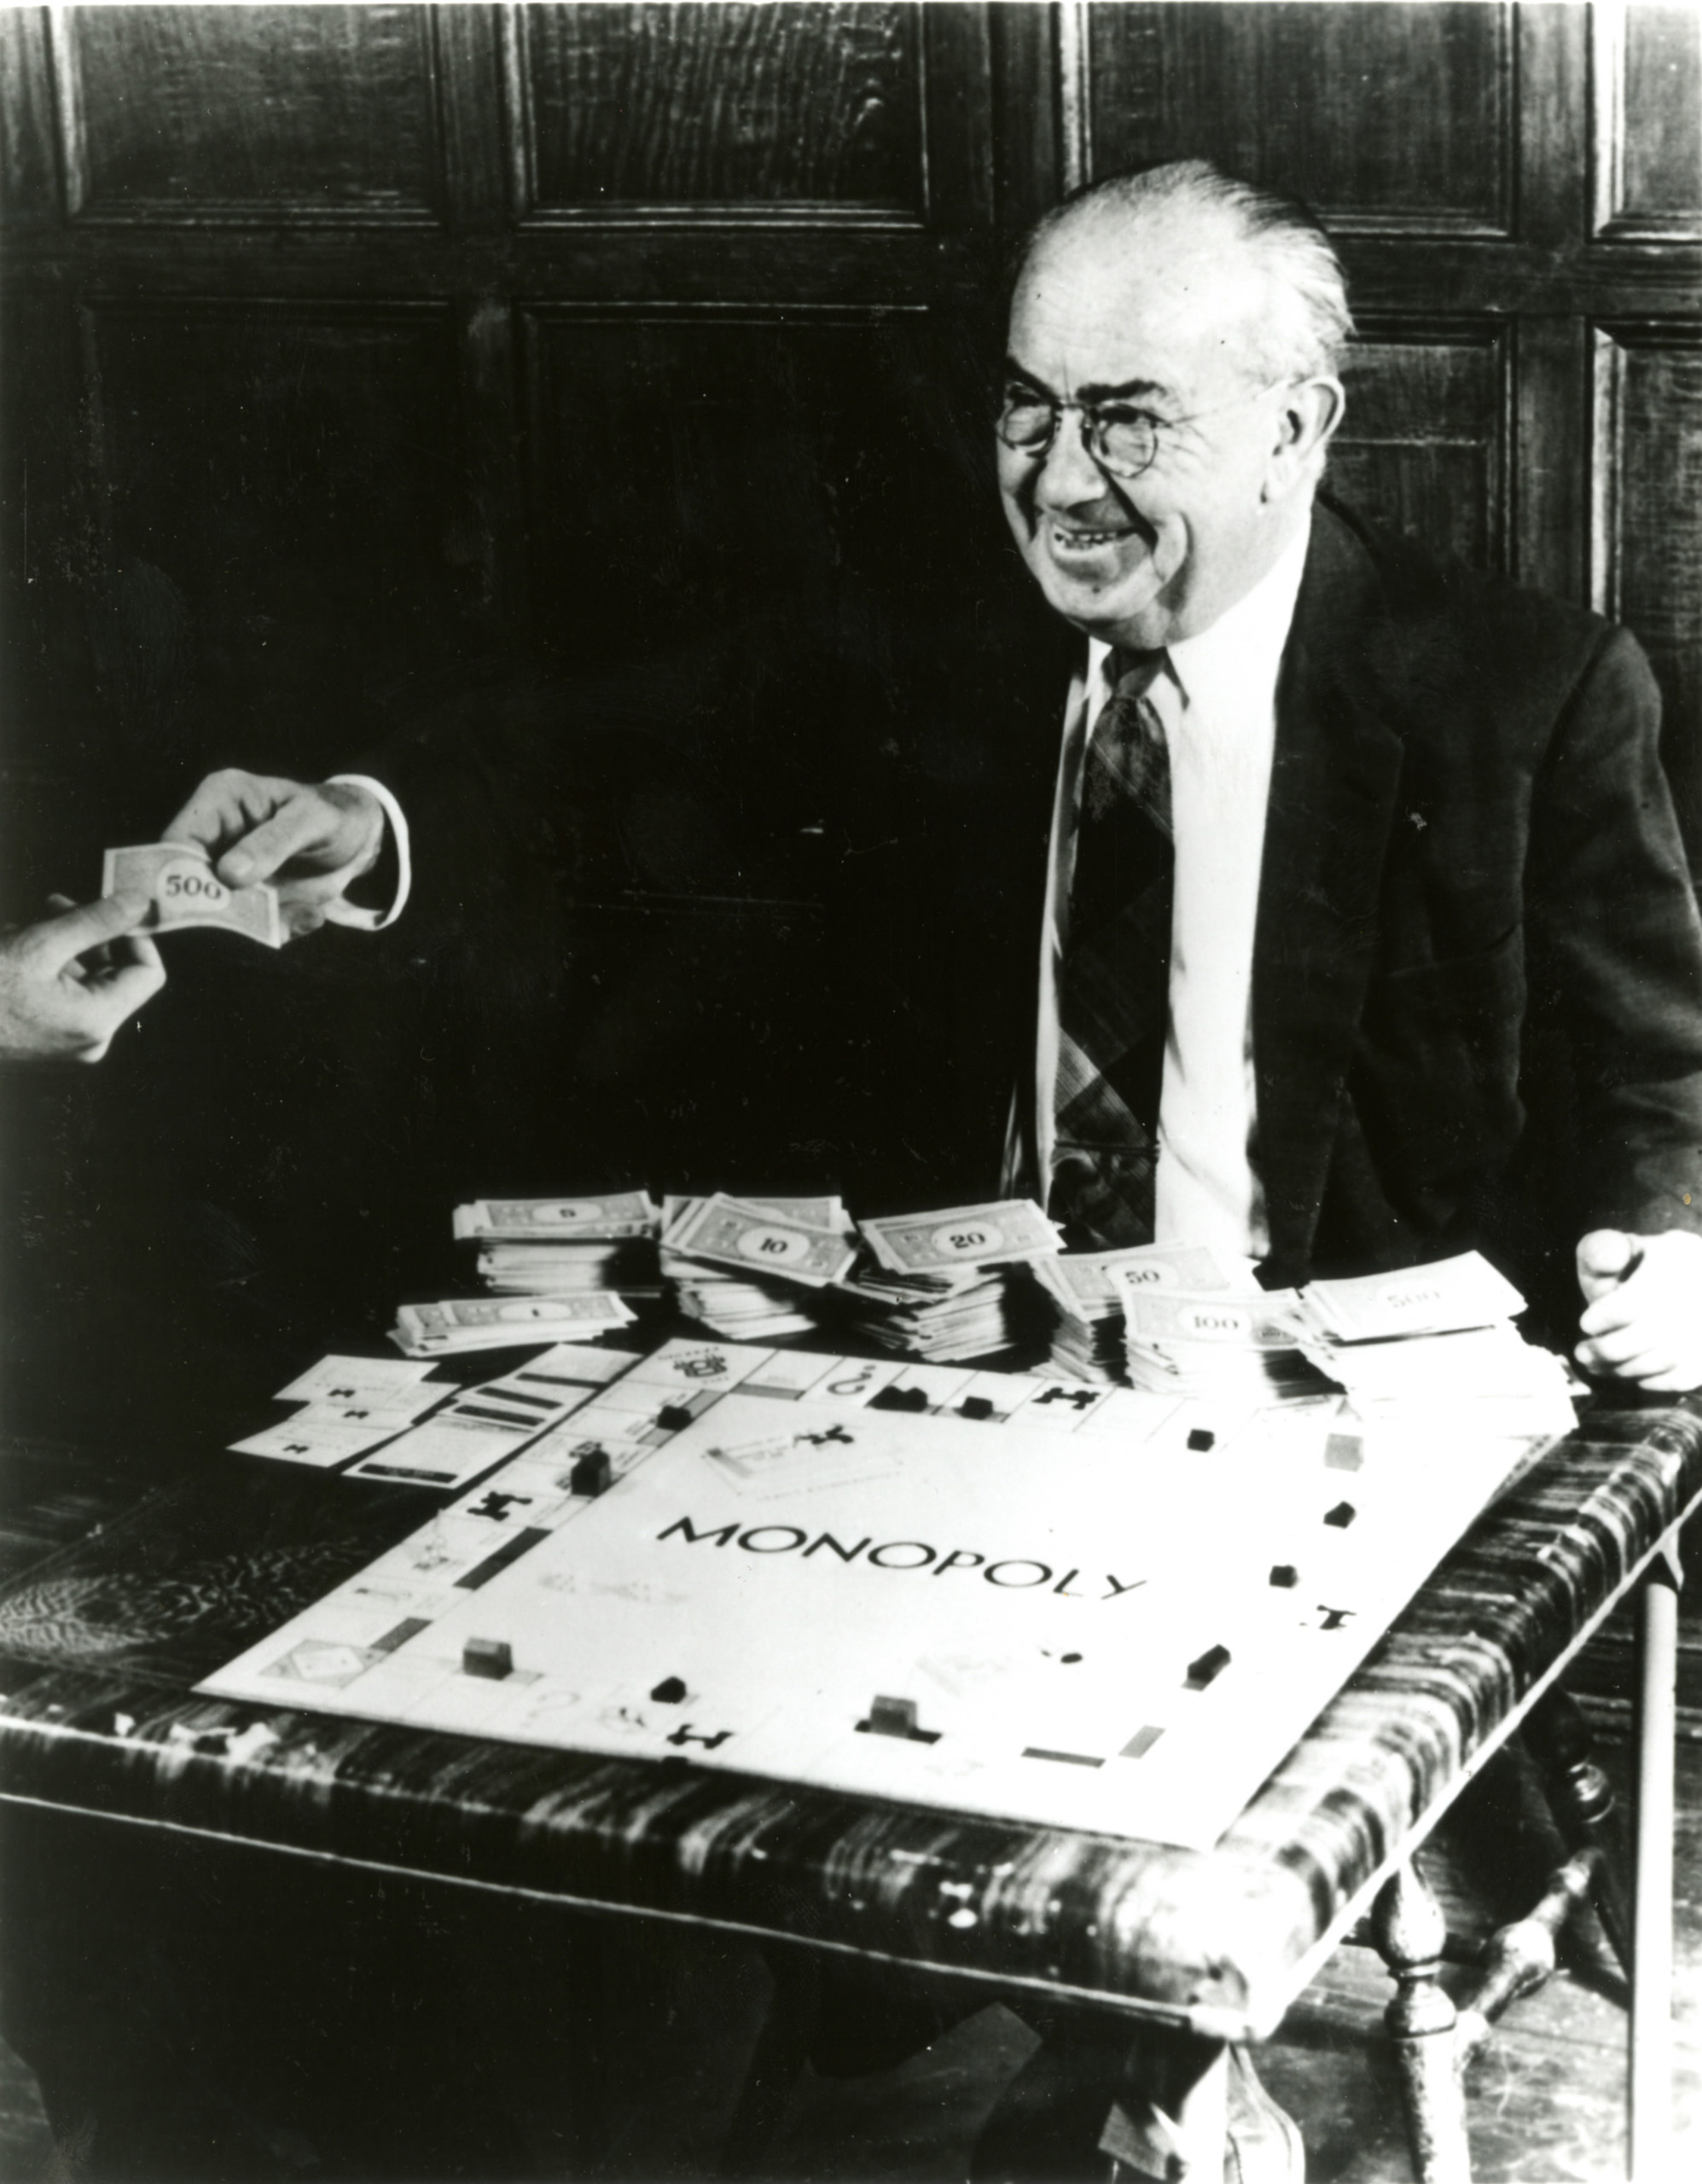 Charles Darrow, inventor of the Monopoly board game.